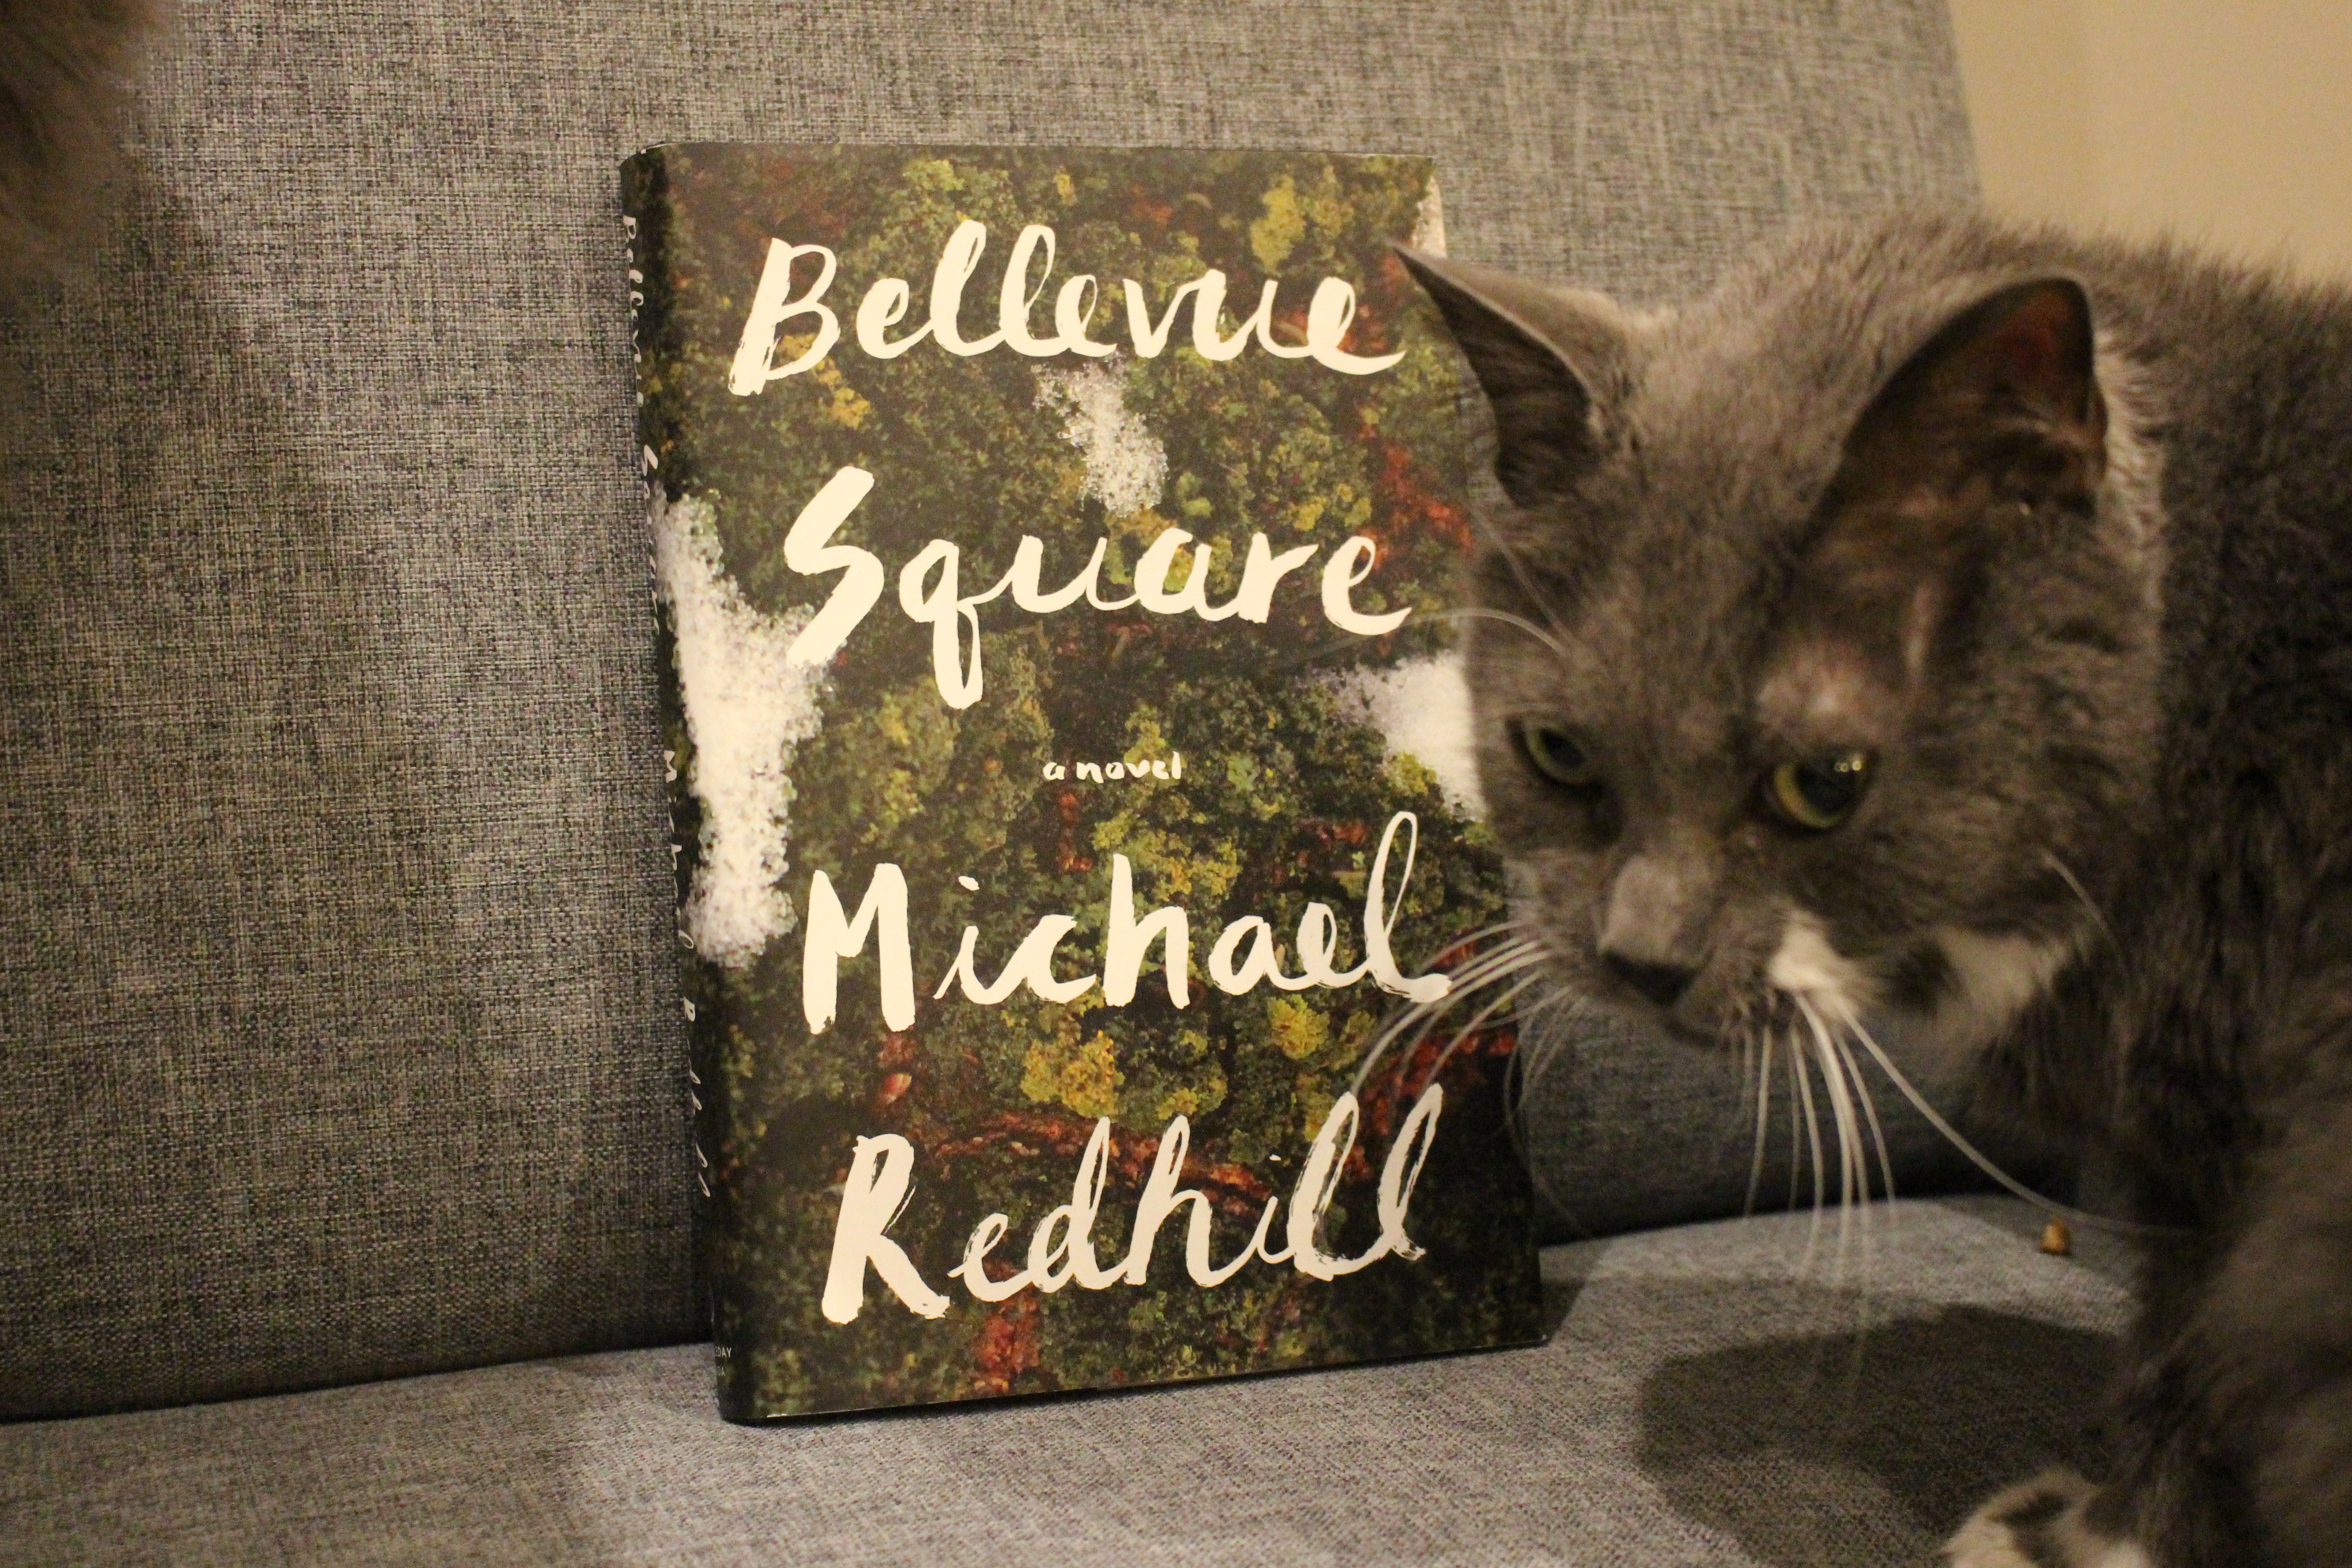 Video Review: Bellevue Square by Michael Redhill